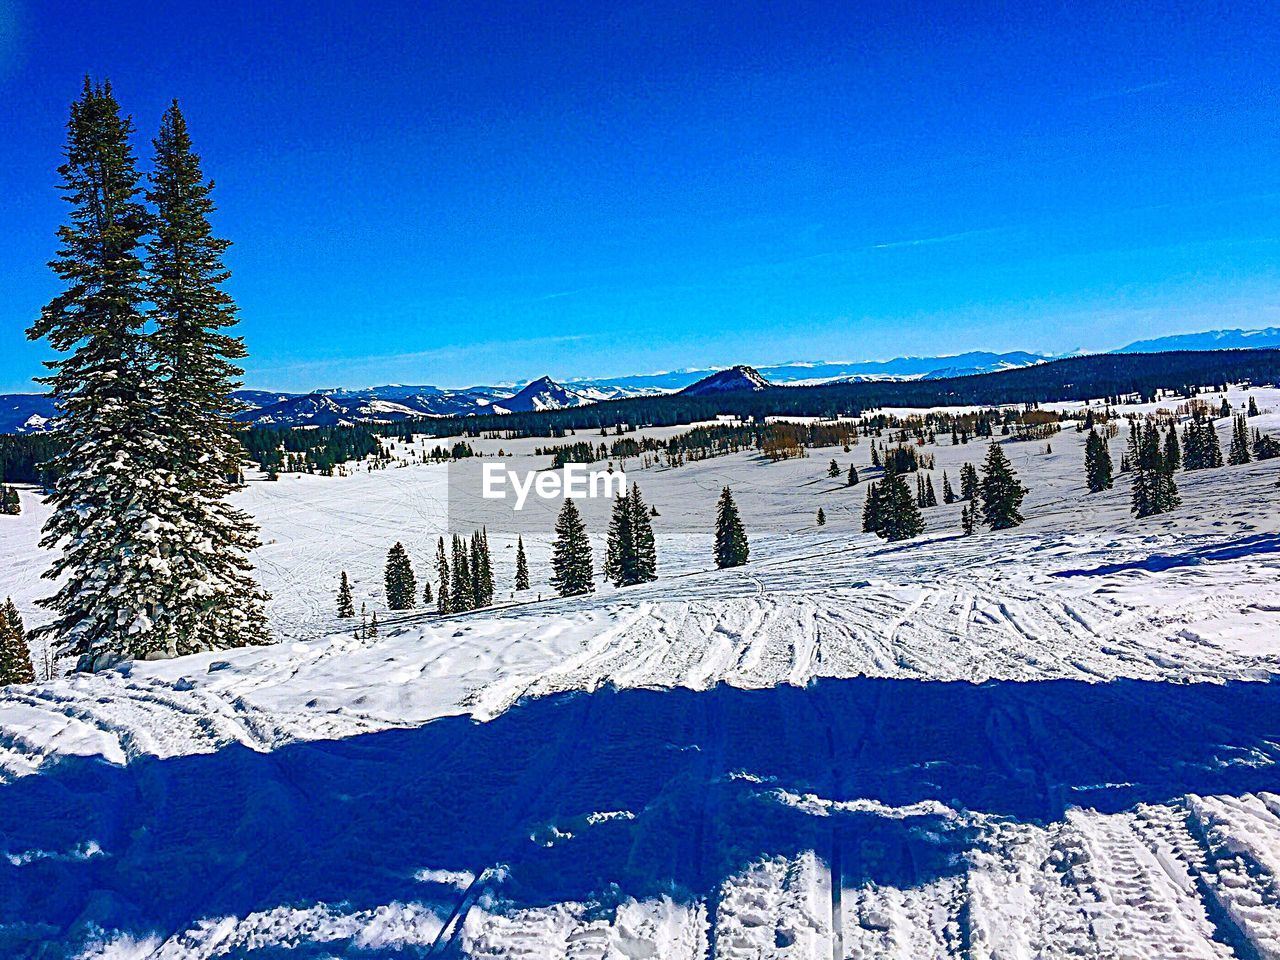 snow, winter, cold temperature, sky, mountain, blue, tree, scenics - nature, beauty in nature, tranquil scene, plant, non-urban scene, tranquility, nature, white color, environment, day, no people, landscape, pine tree, coniferous tree, snowcapped mountain, pine woodland